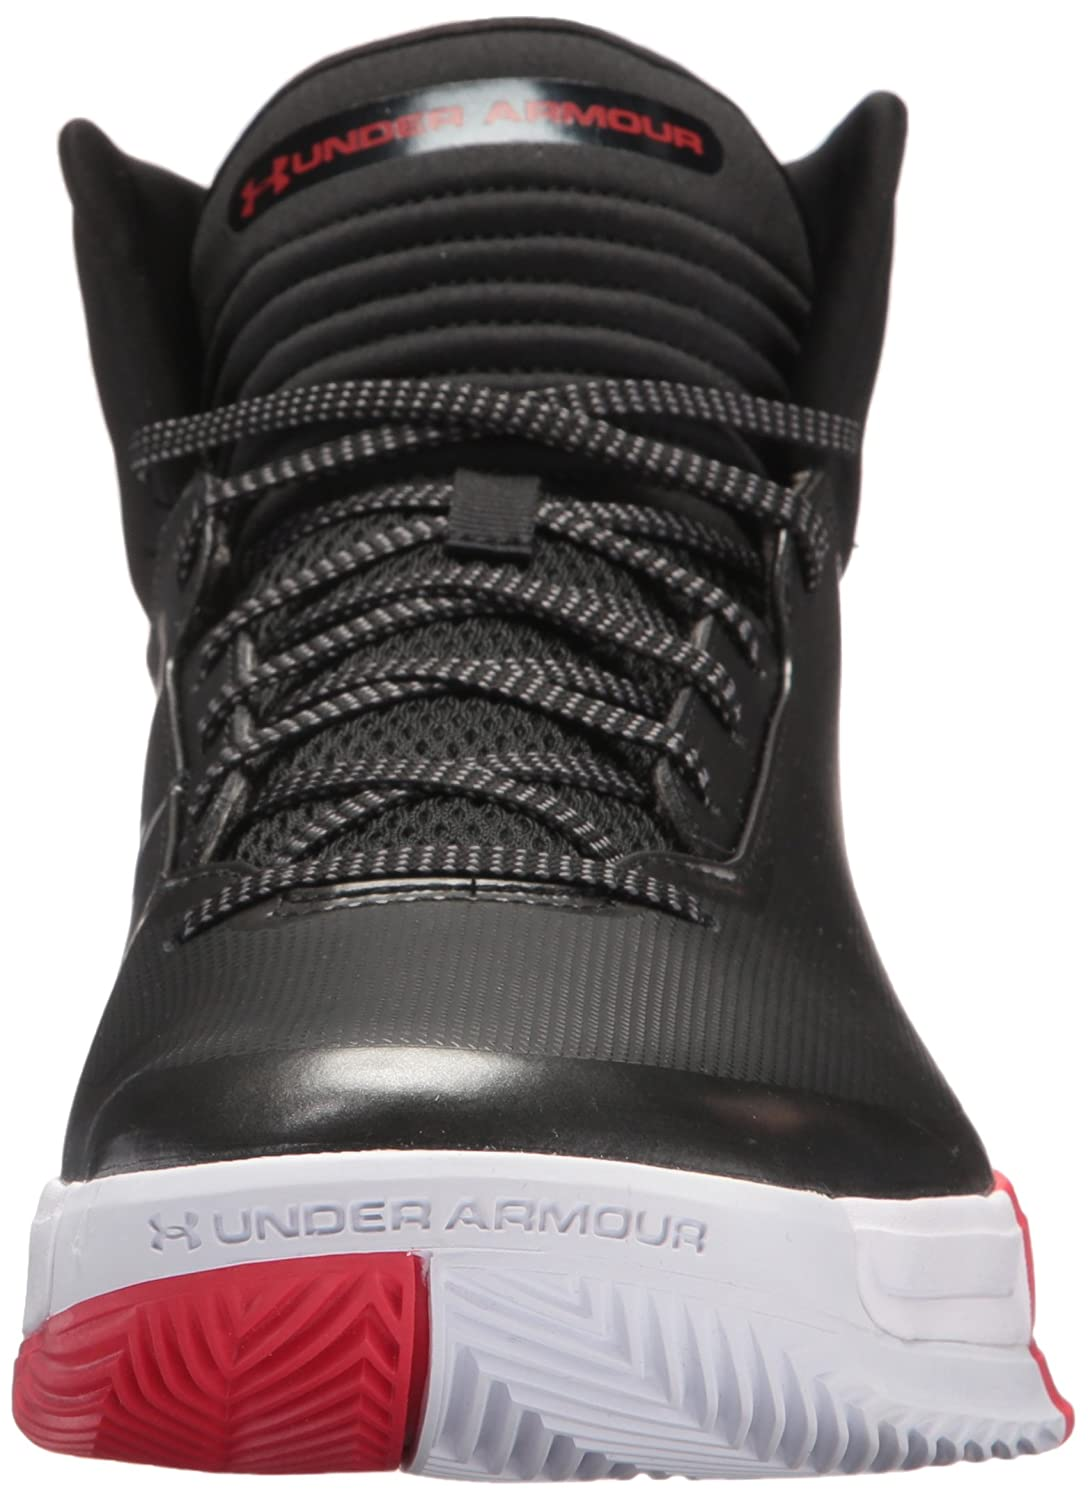 a1c3851c319 Under Armour Men s UA Lockdown 2 1303265-005 Sneakers  Amazon.co.uk  Shoes    Bags